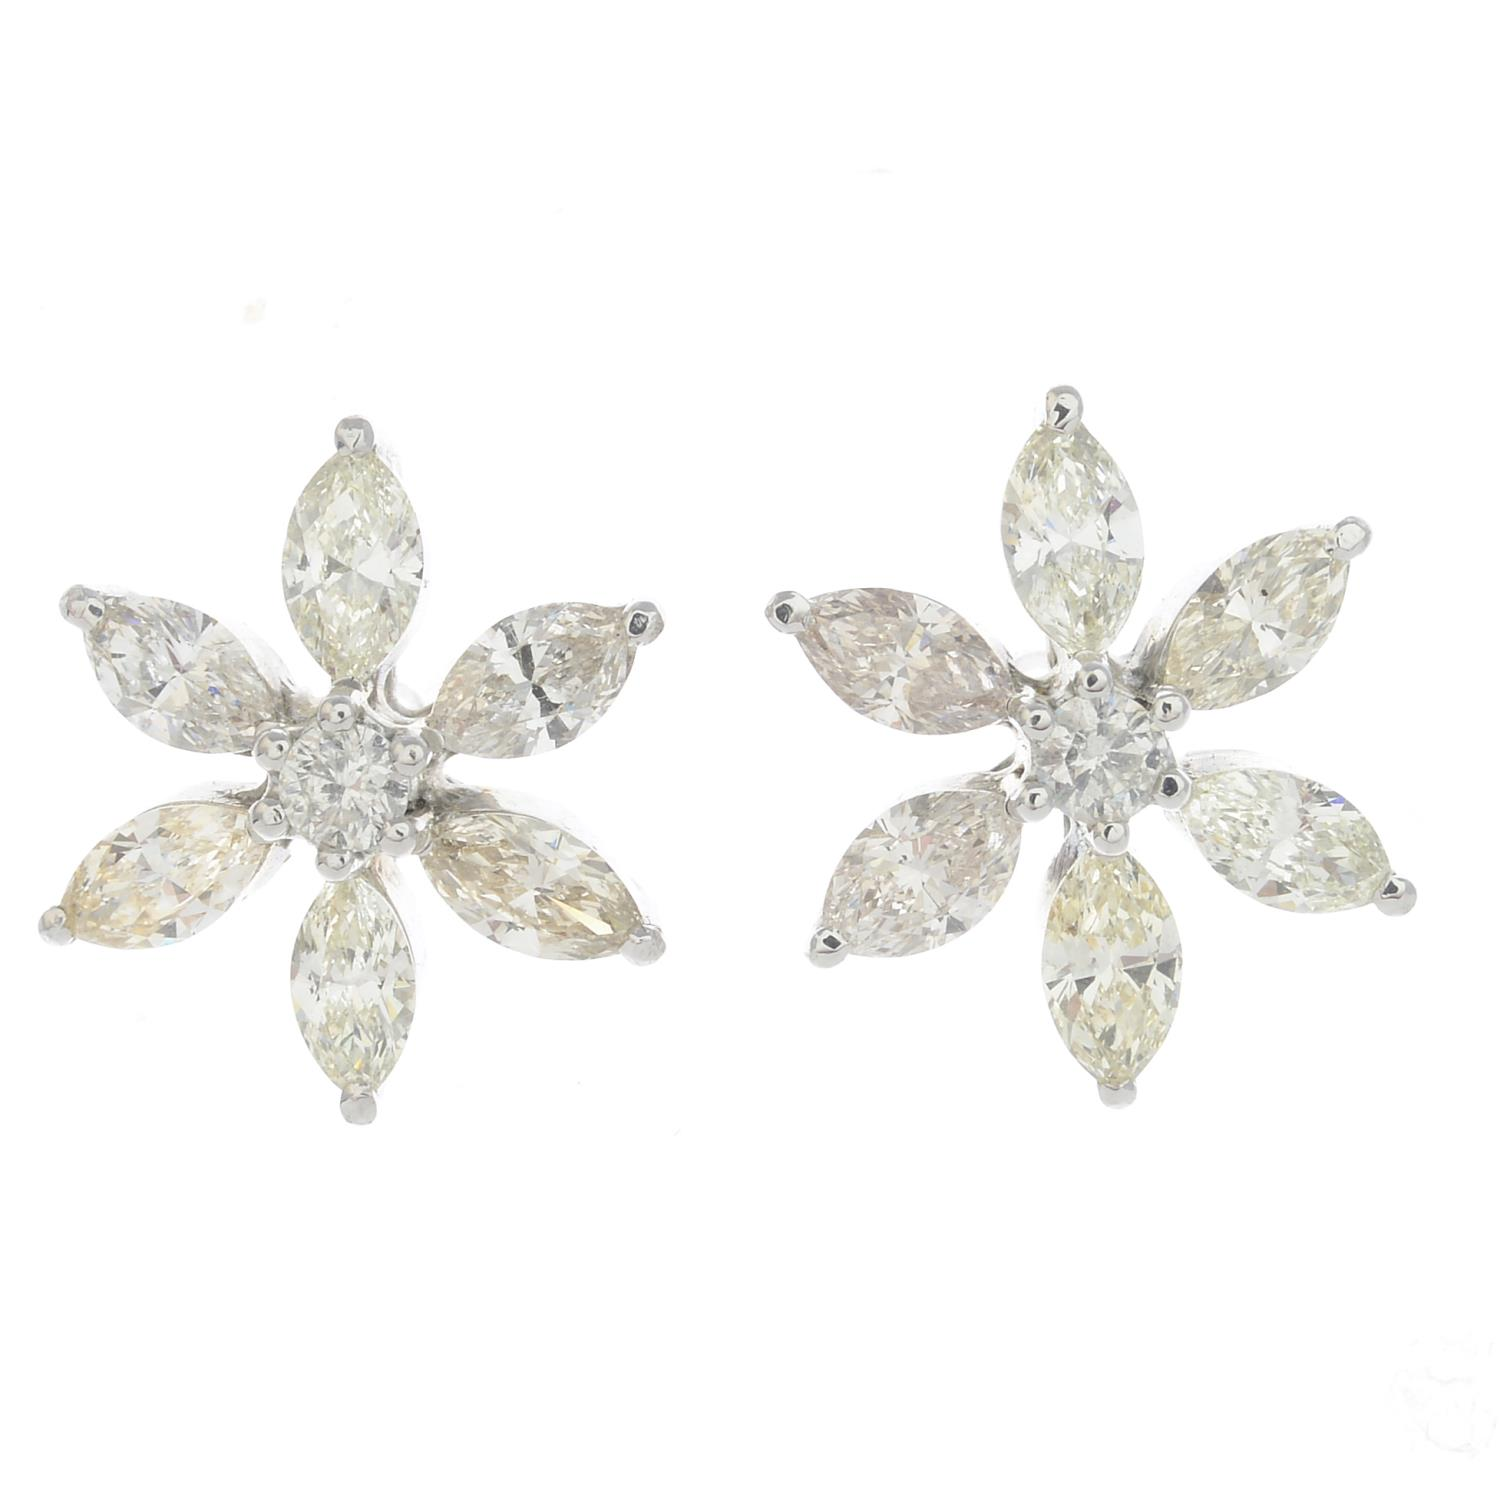 Lot 57 - A diamond flower ring and a pair of matching diamond flower earrings.Estimated total diamond weight